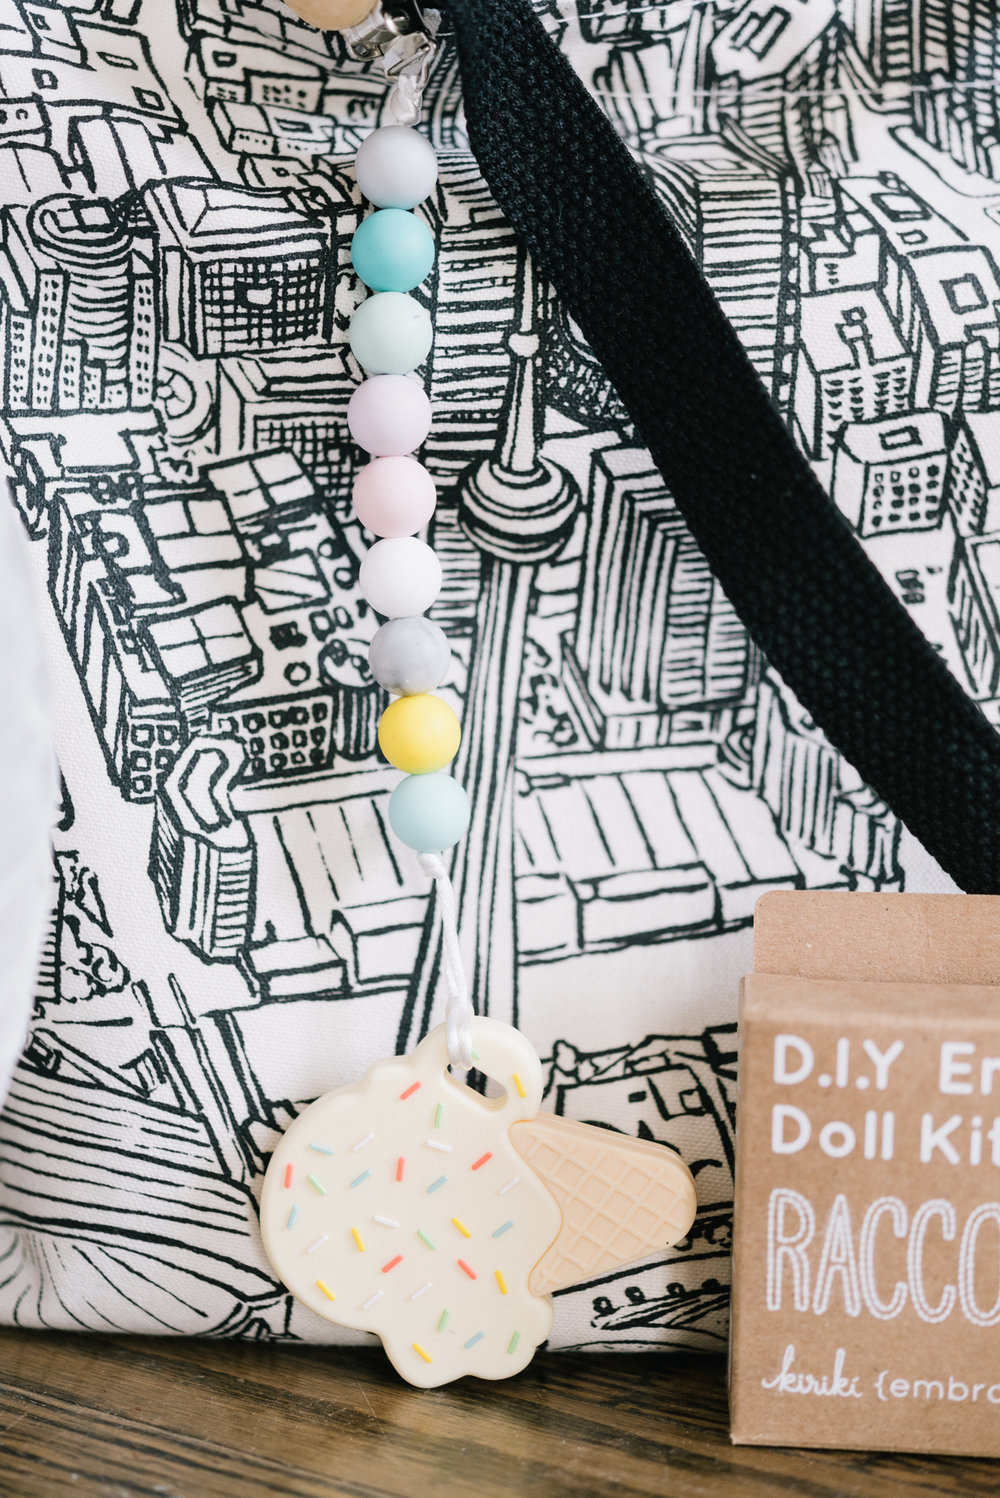 The cutest ice cream teether by Sweetie Pie Design Co ready to go on a Toronto skyline tote by Gotamago.